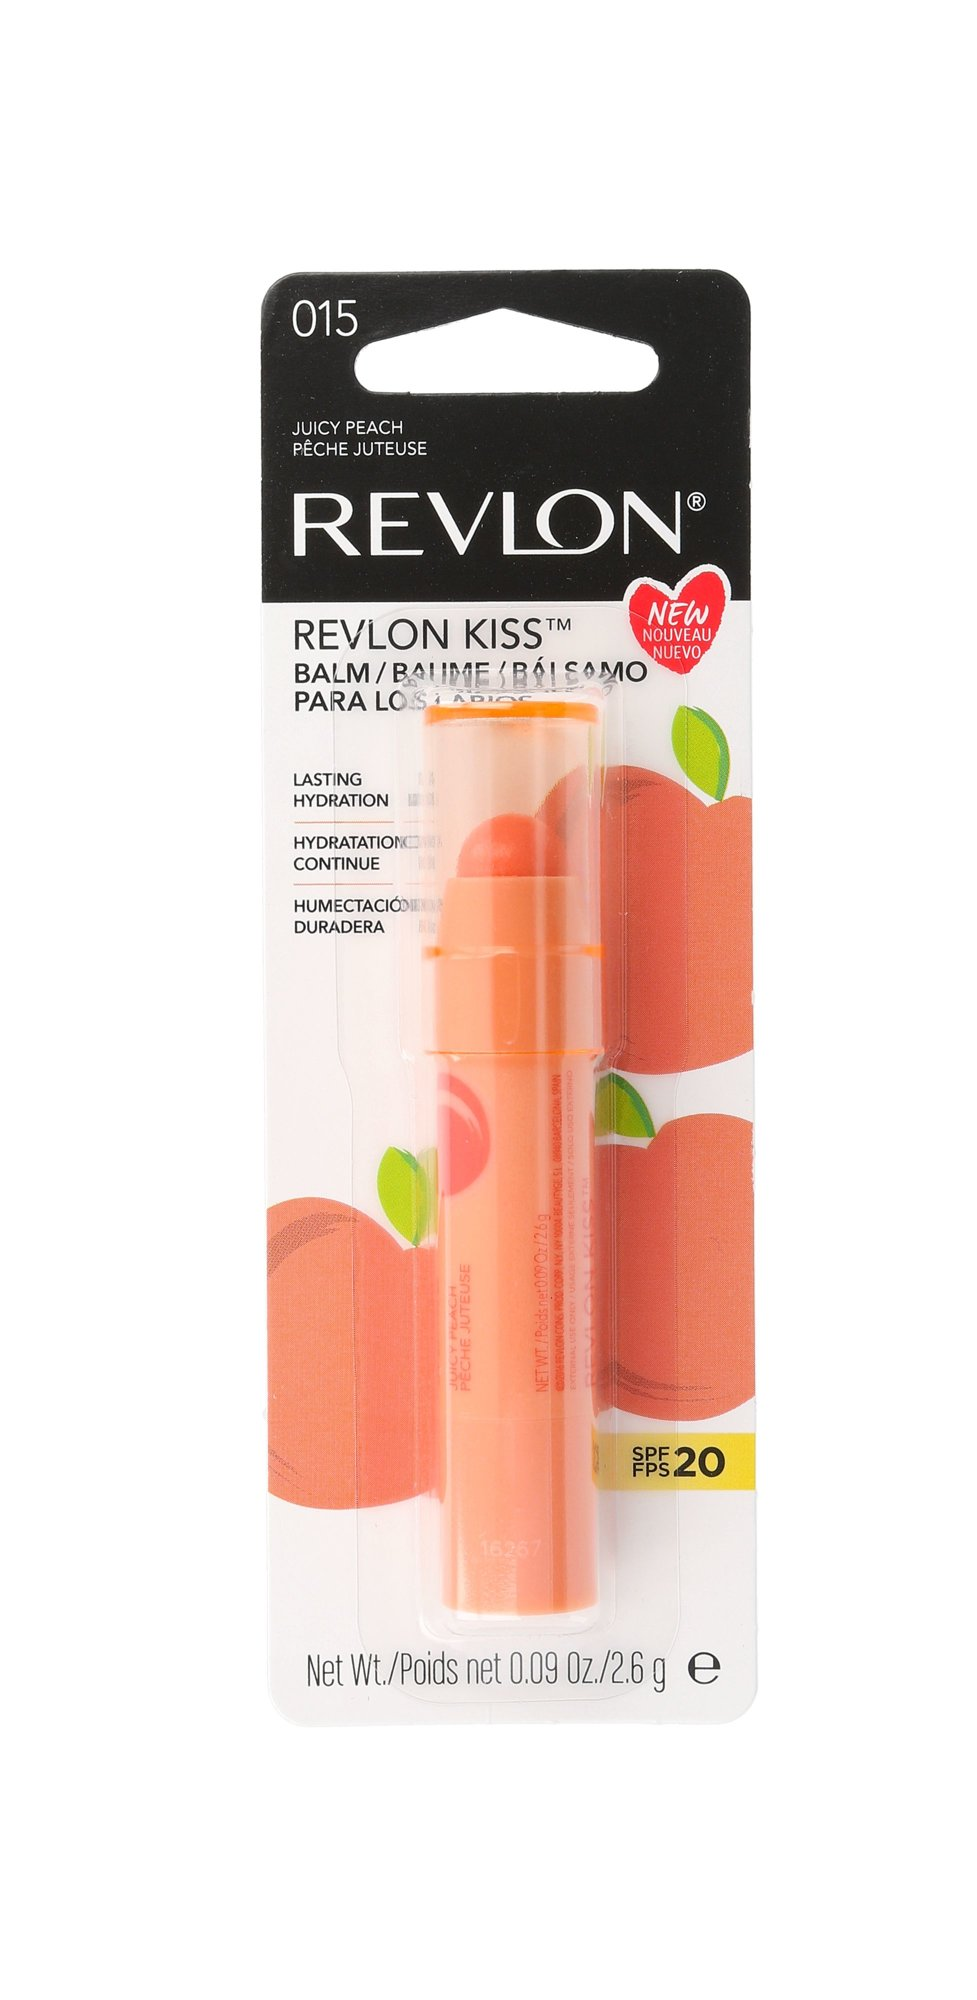 Revlon Revlon Kiss Cosmetic 2,6ml 015 Juicy Peach